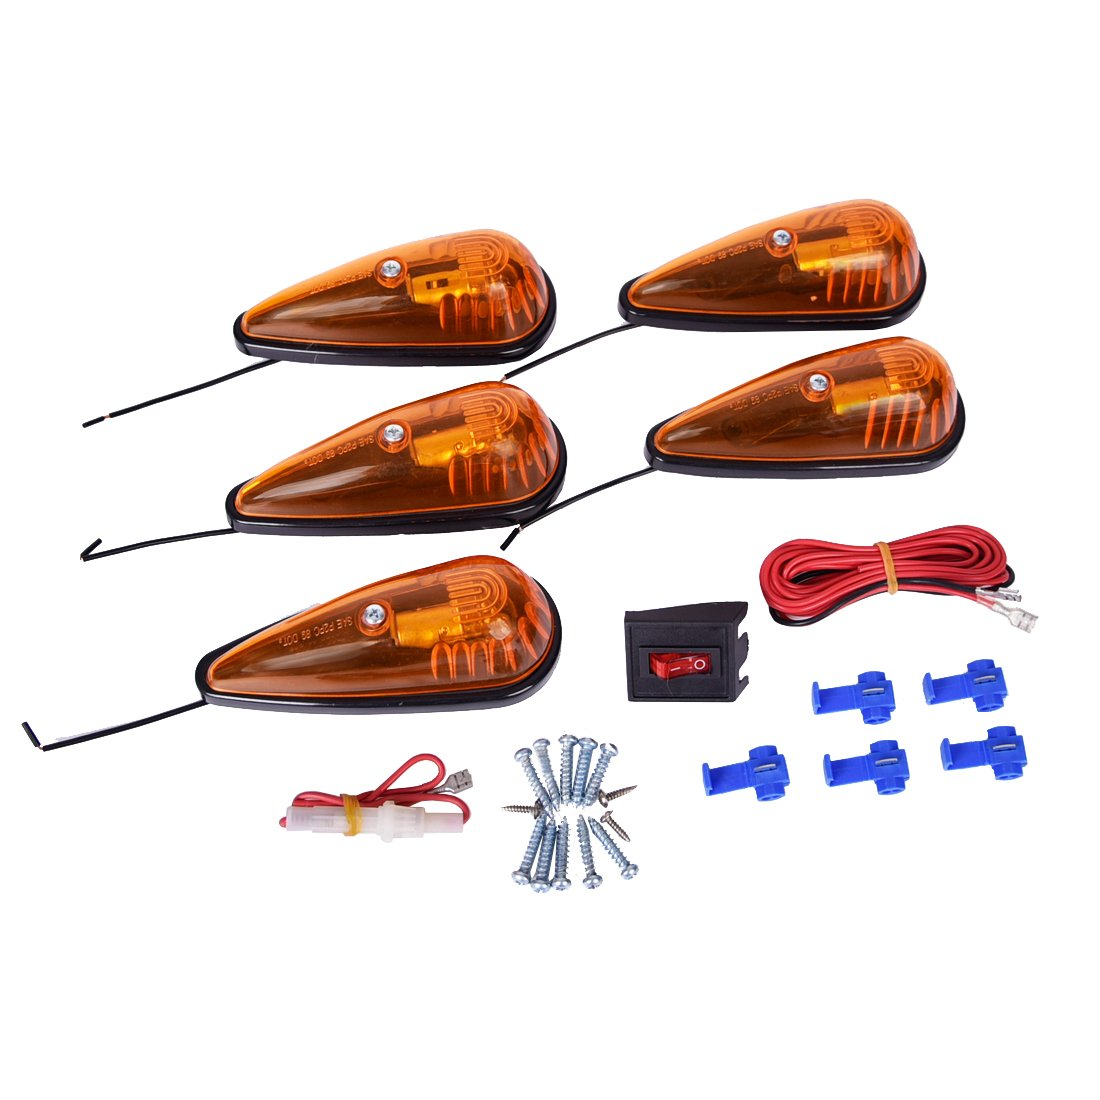 CZC AUTO 5 Pack 5-1/2 inch Amber Teardrop Cab Clearance Marker Roof Running ID Light Kit with on/off Switch, Front Rear Top-Mounted for Trailer Truck RV Pickup Semi Van Boat Camper Bus Sedan 10157